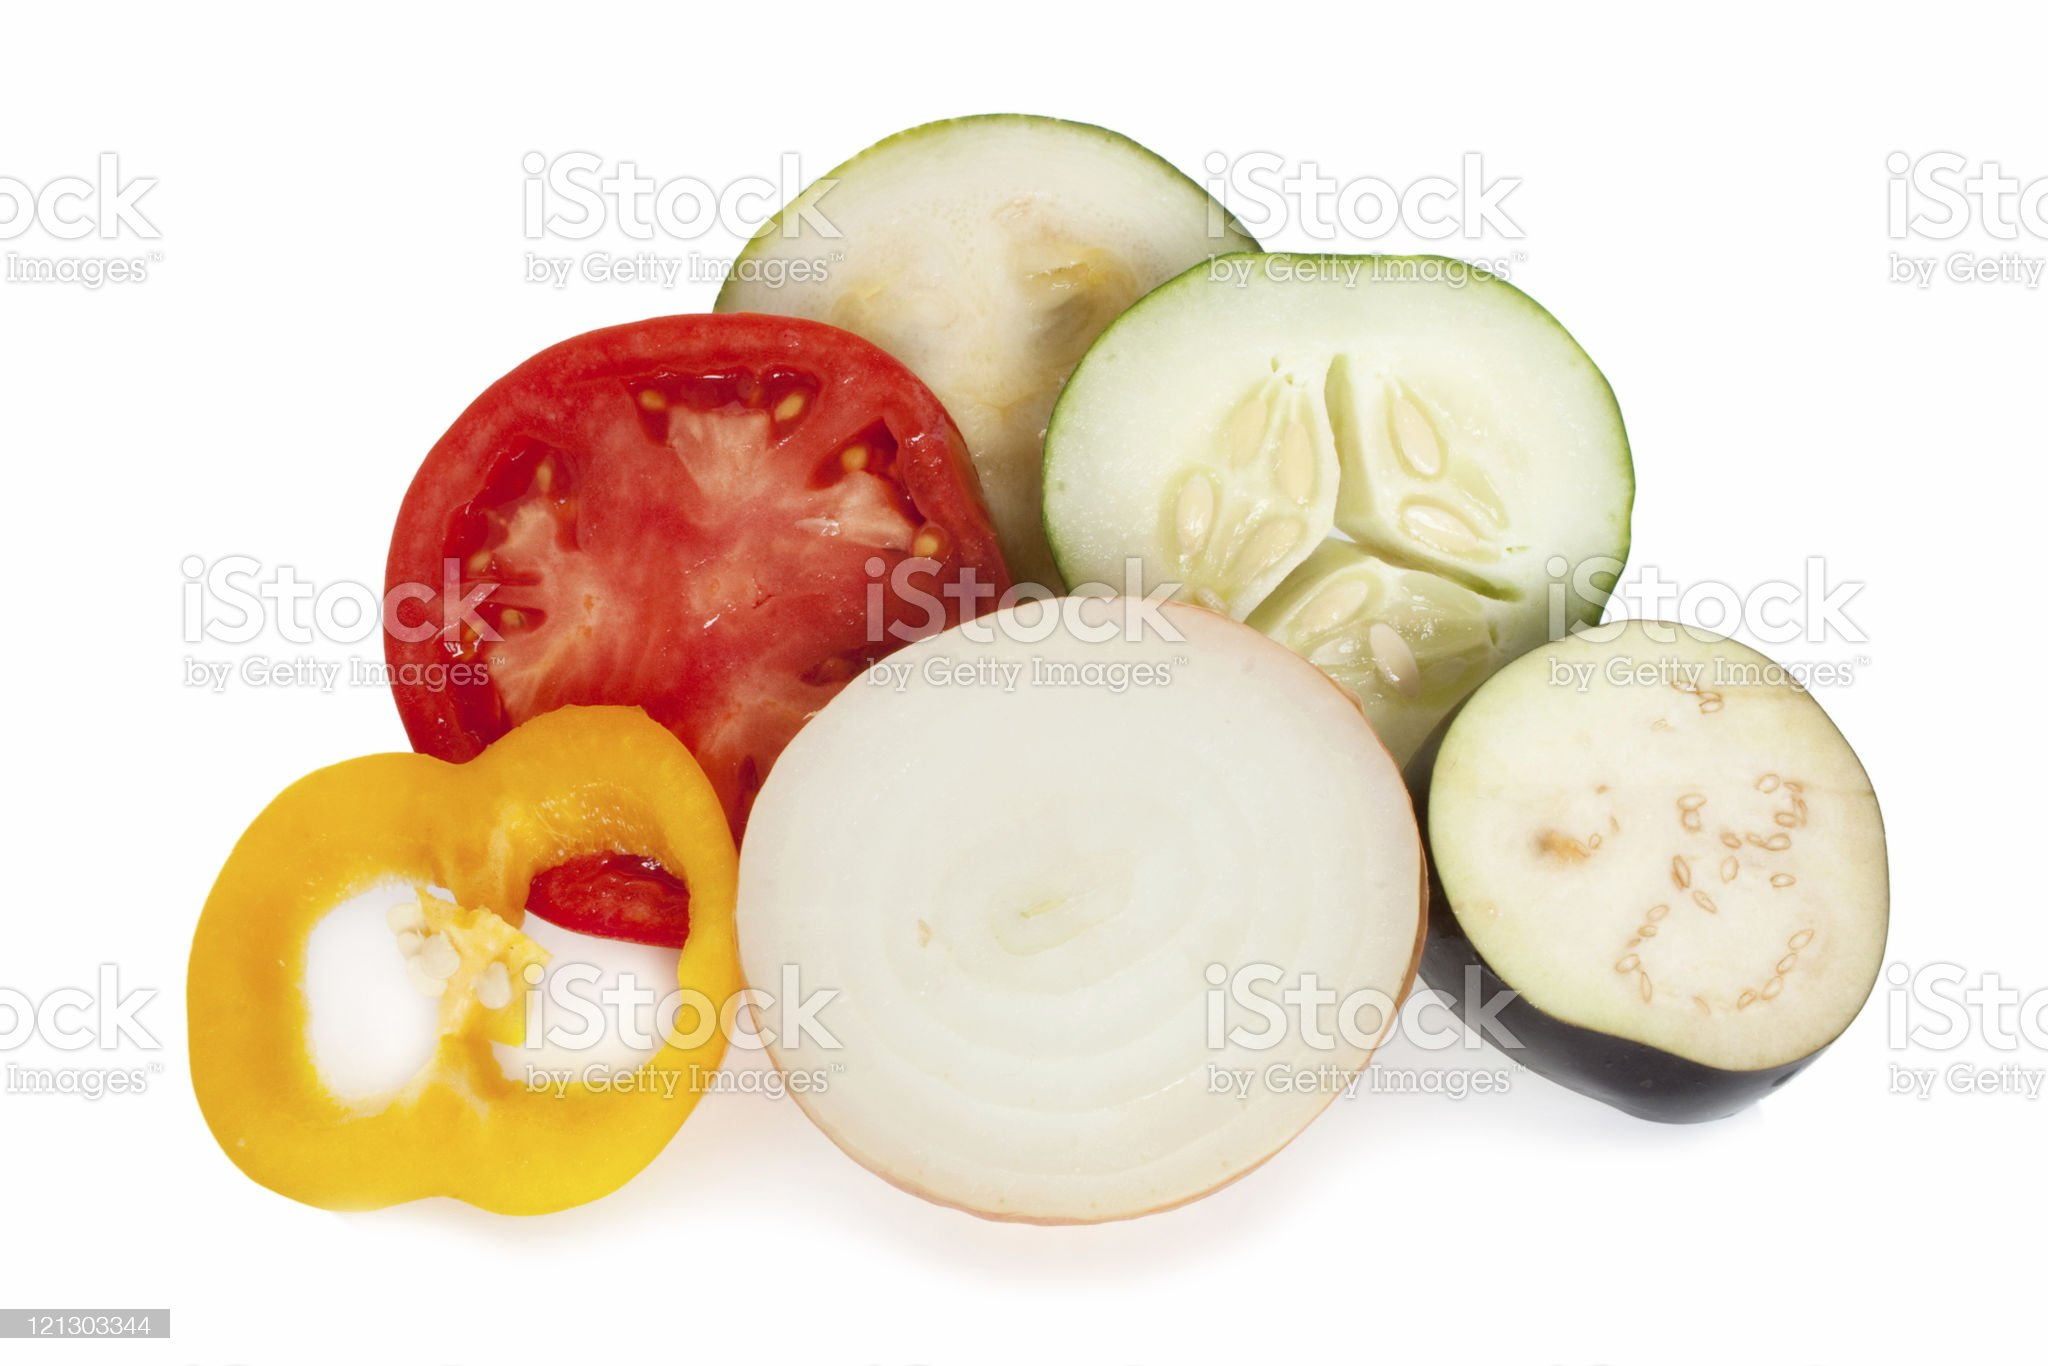 Cut vegetable royalty-free stock photo